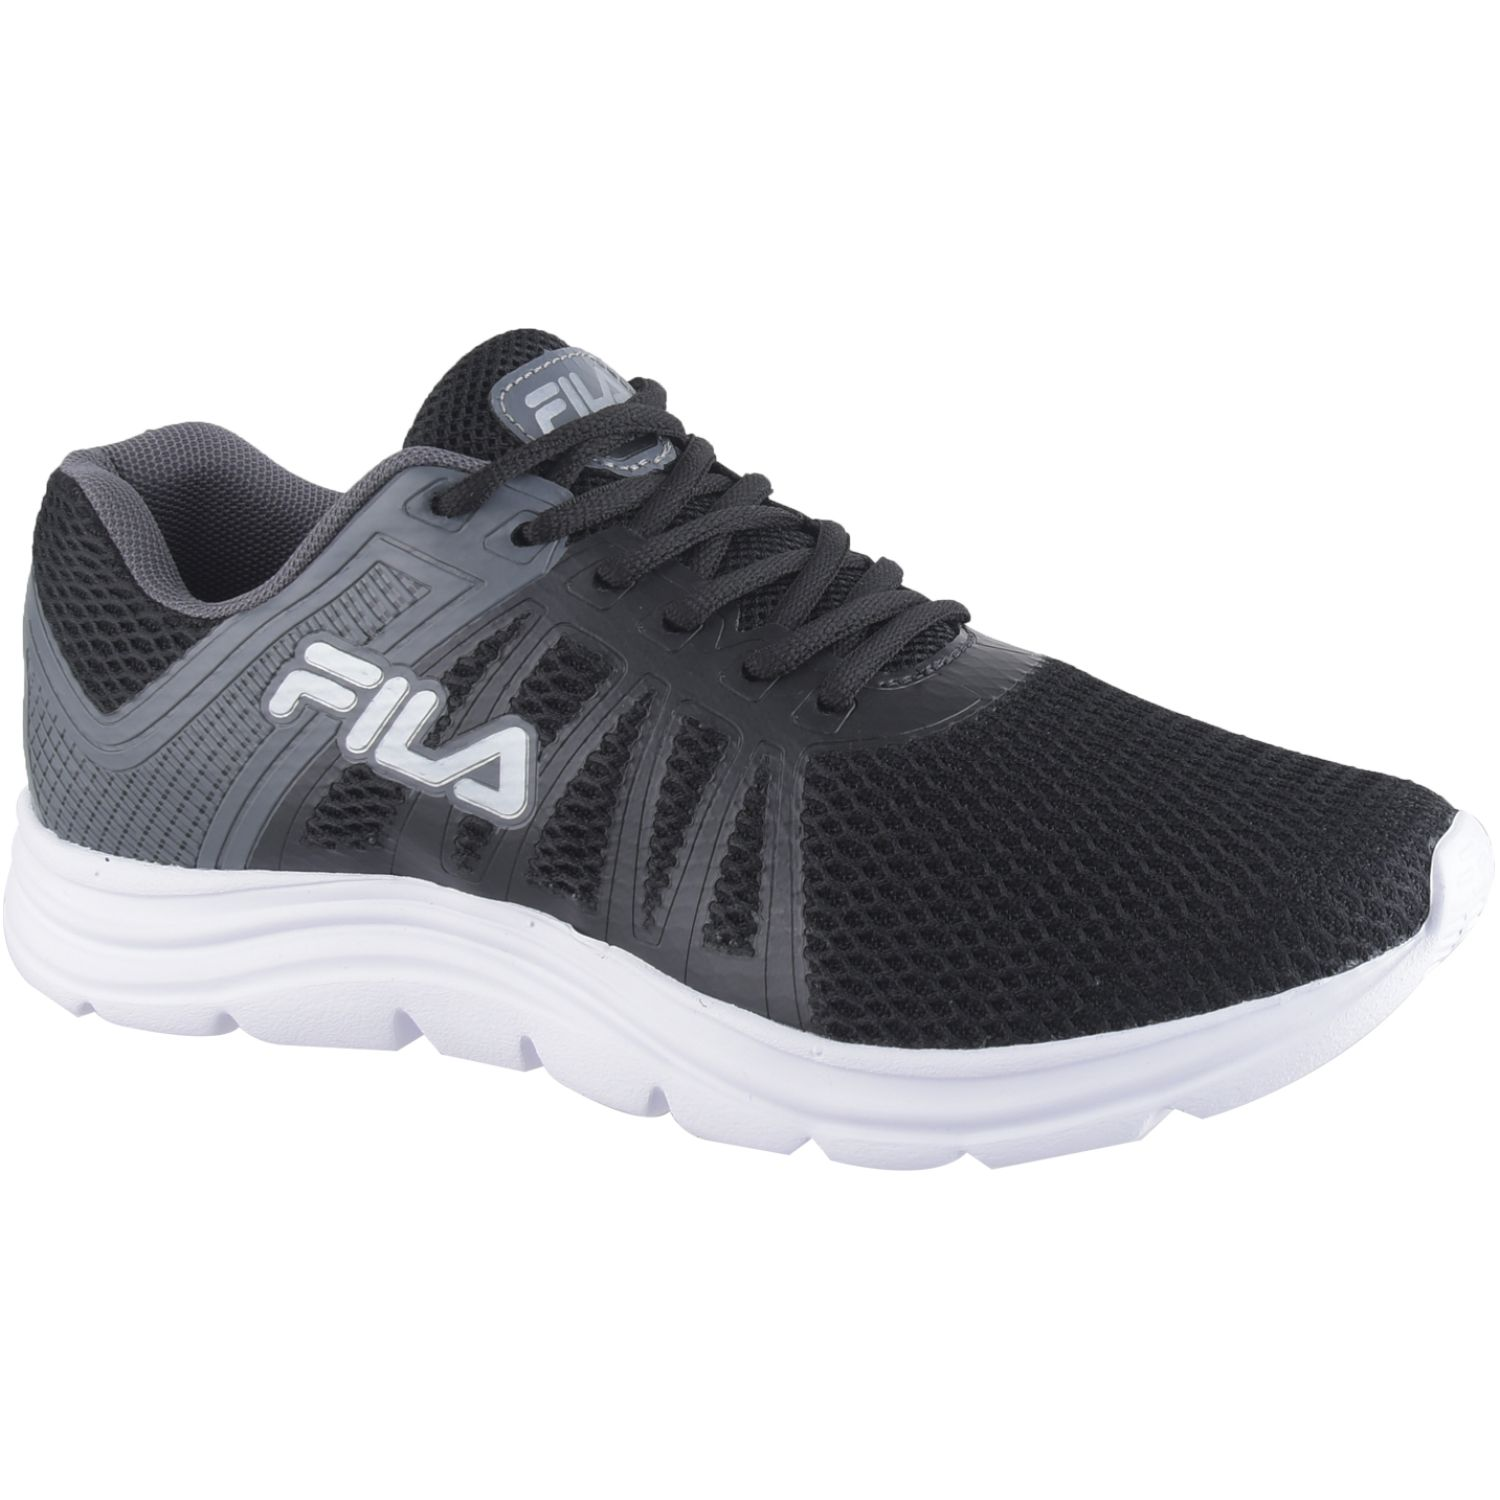 Fila tenis fila finder masculino Negro / plomo Walking